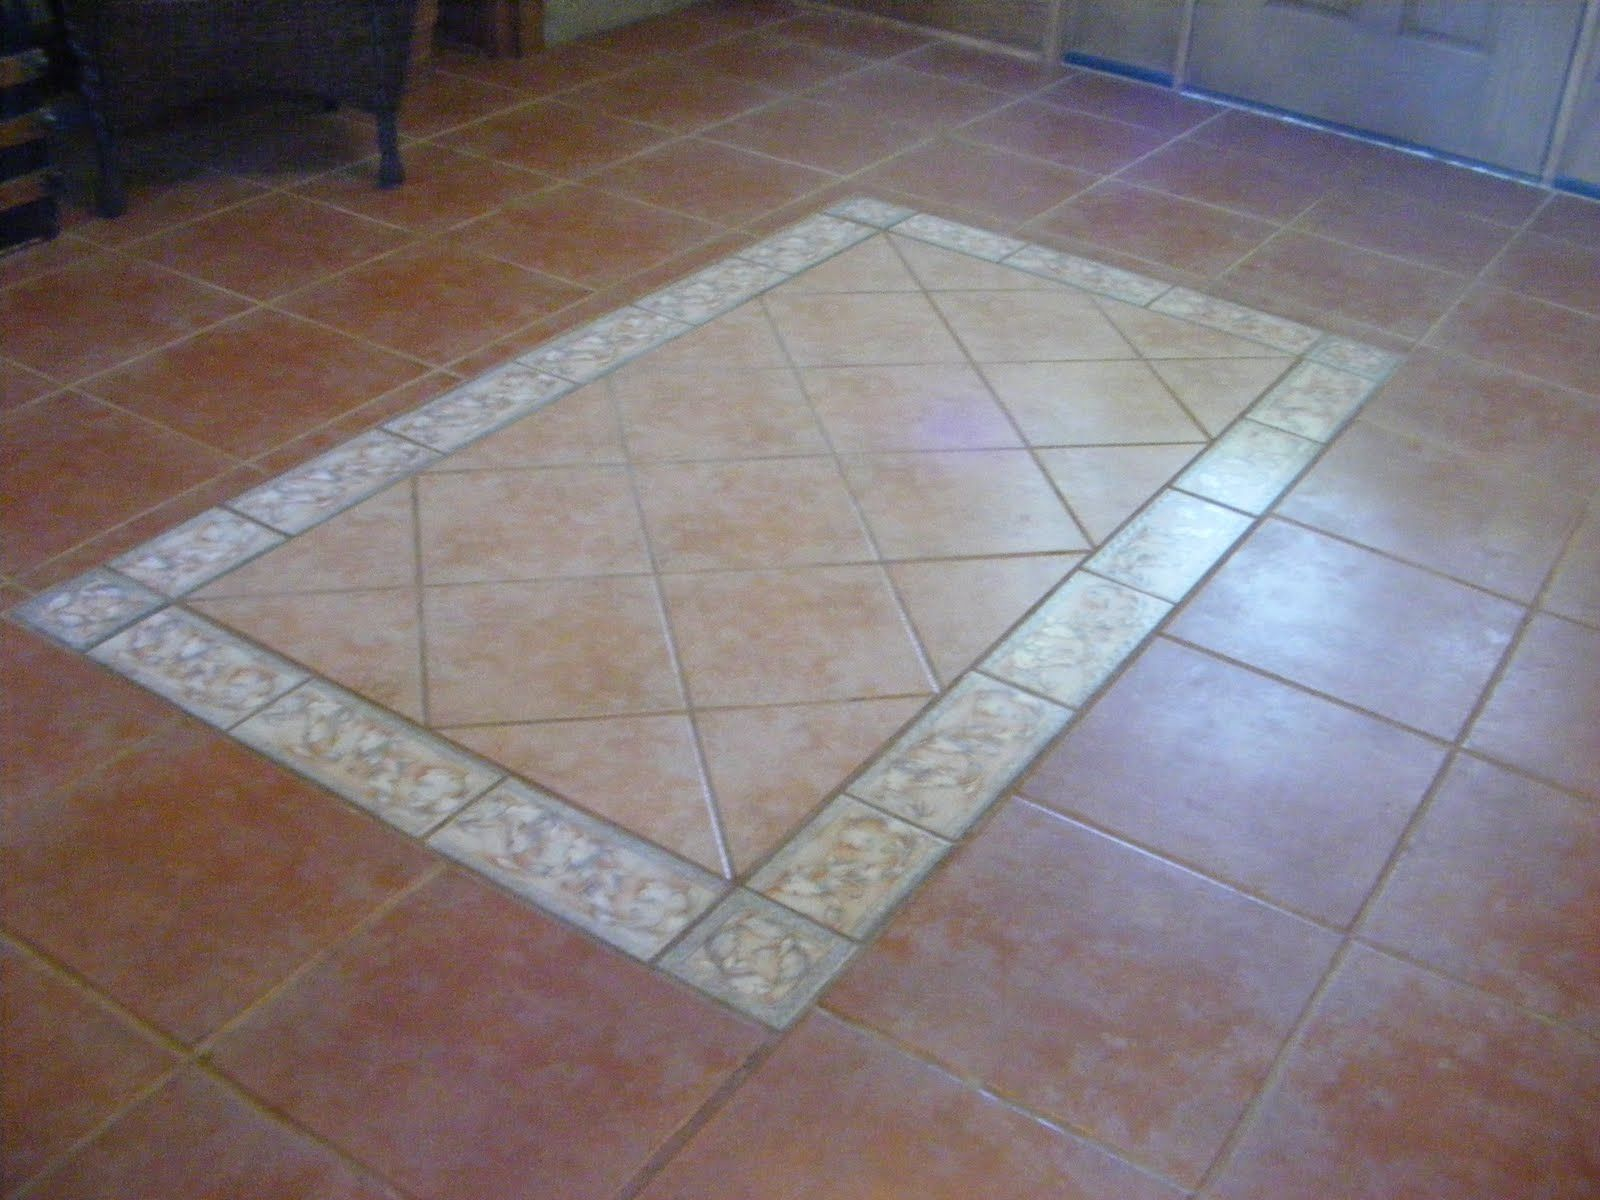 Tile Flooring Design Ideas floor design rigo tile Tile Flooring Designs Ideas Natural Clay Ceramic Tiles With Brown Tile Design Tile Countertops Of Awesome Pictures Of Tile Floor Patterns Design From